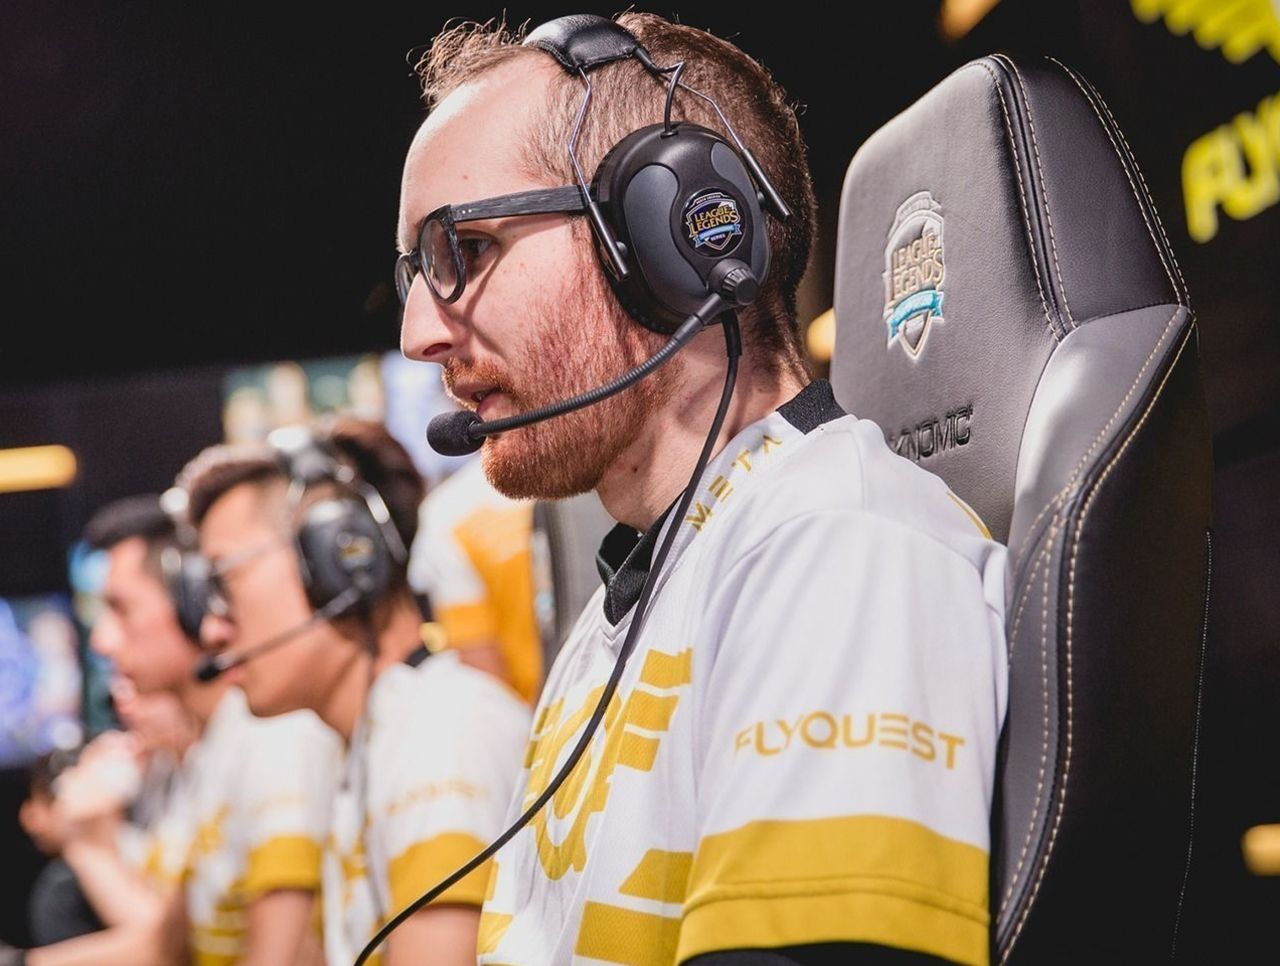 Cropped flyquest5